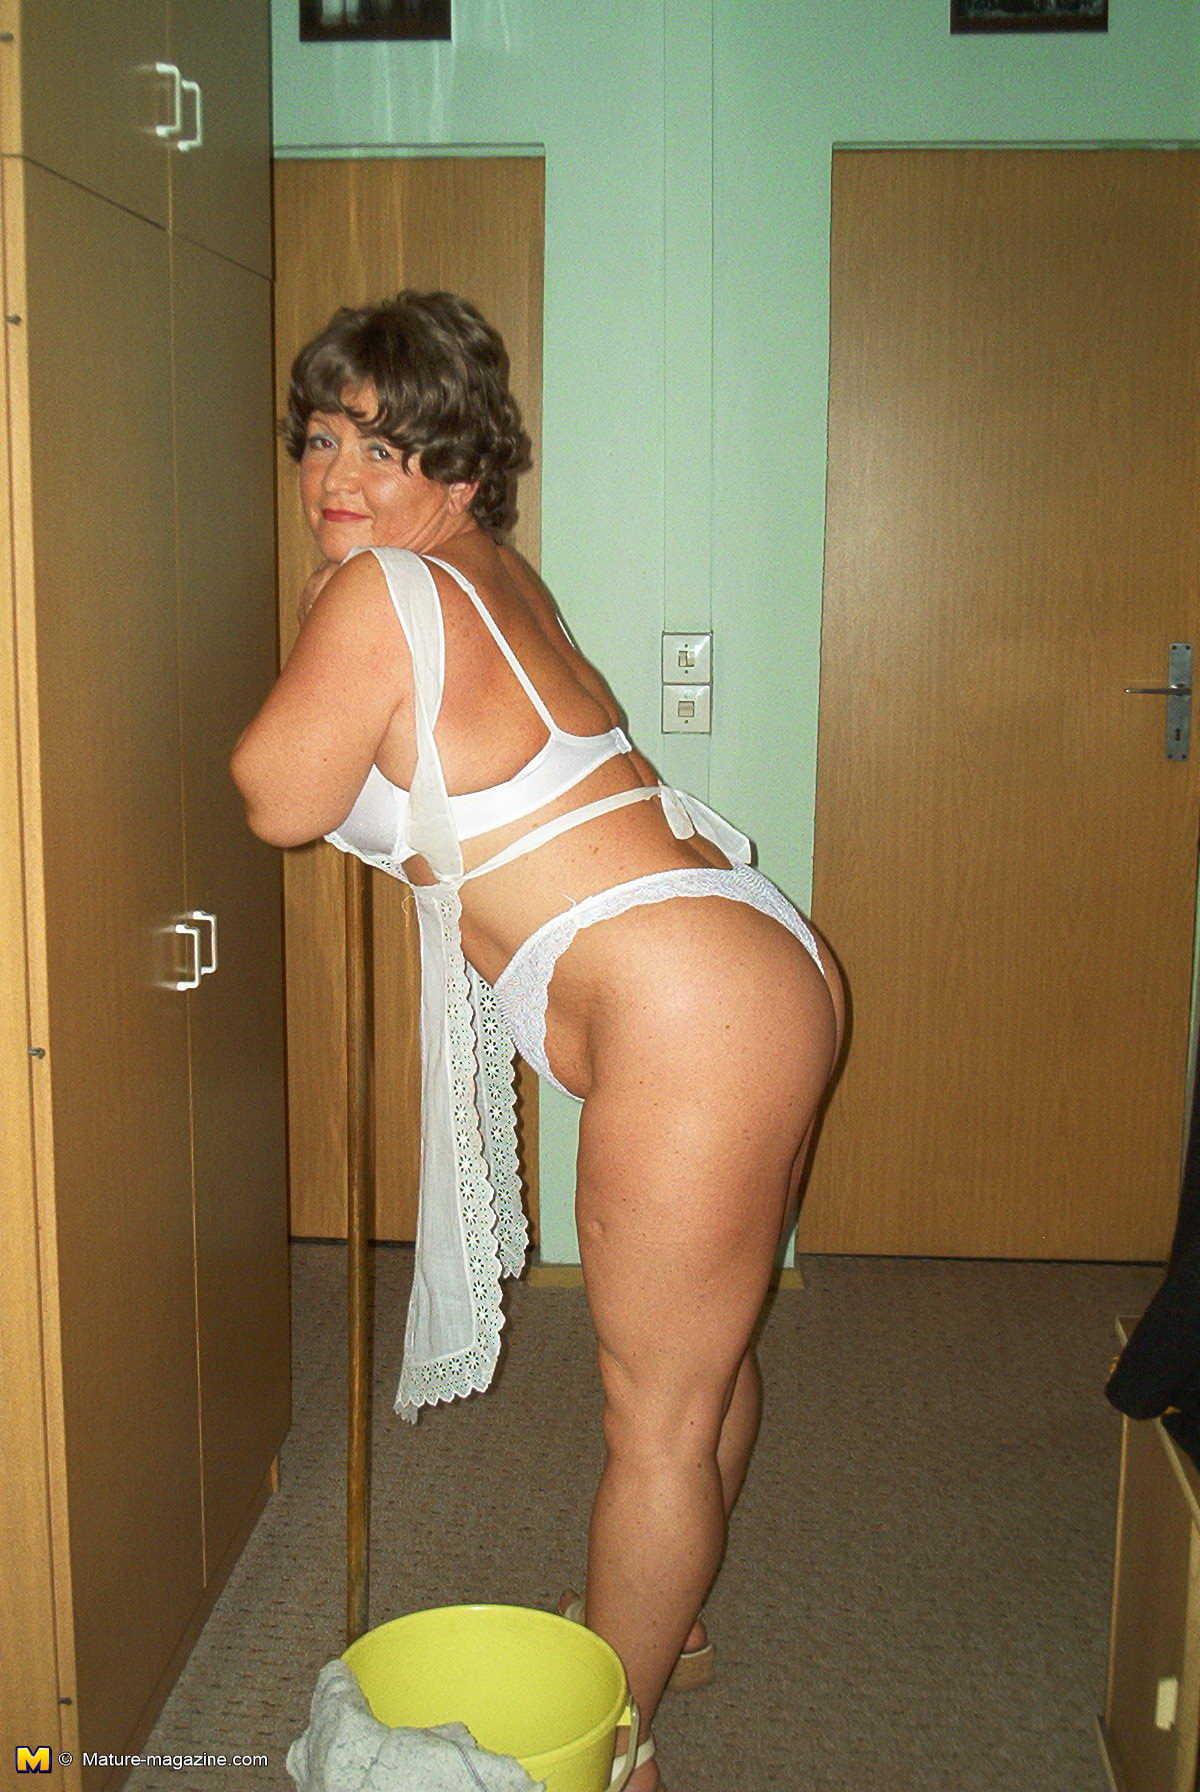 Cleaning lady naked